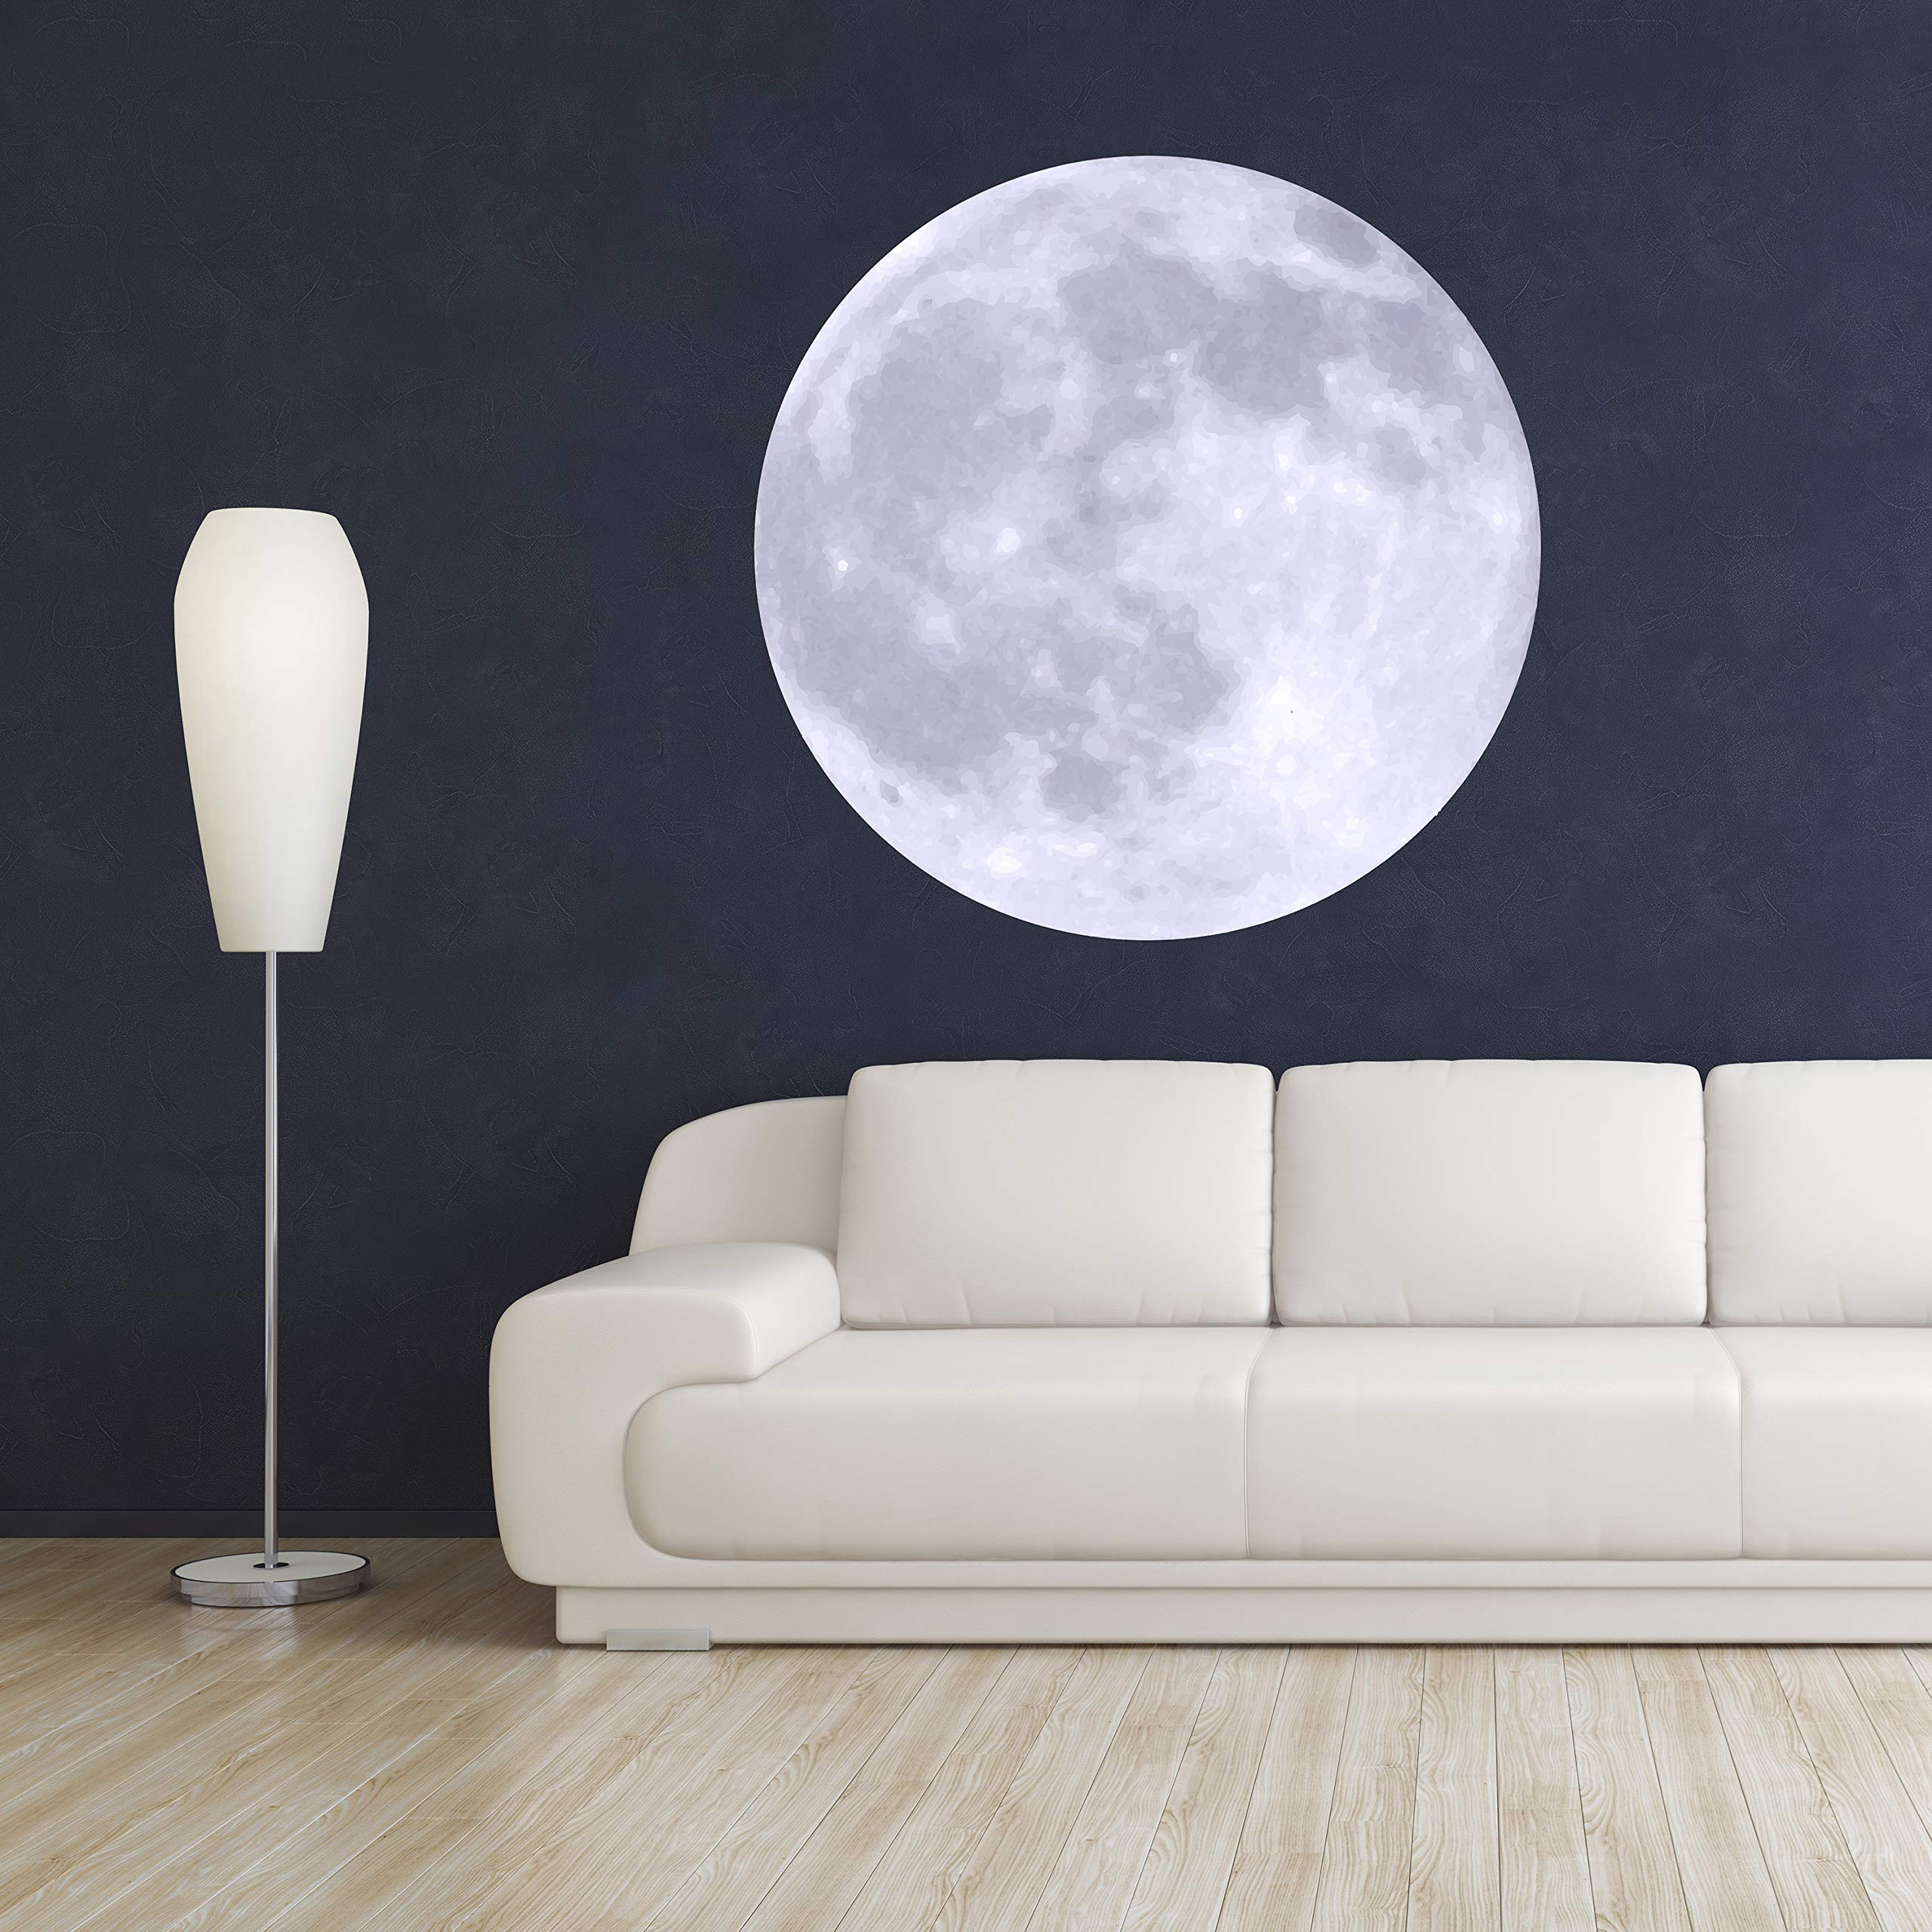 Moon Wall Decal Room Decor - Bedroom Wall Stickers - Moon Removable Wallpaper - Moon Wall Mural Vinyl Art Décor Sticker (36'' x 36'')